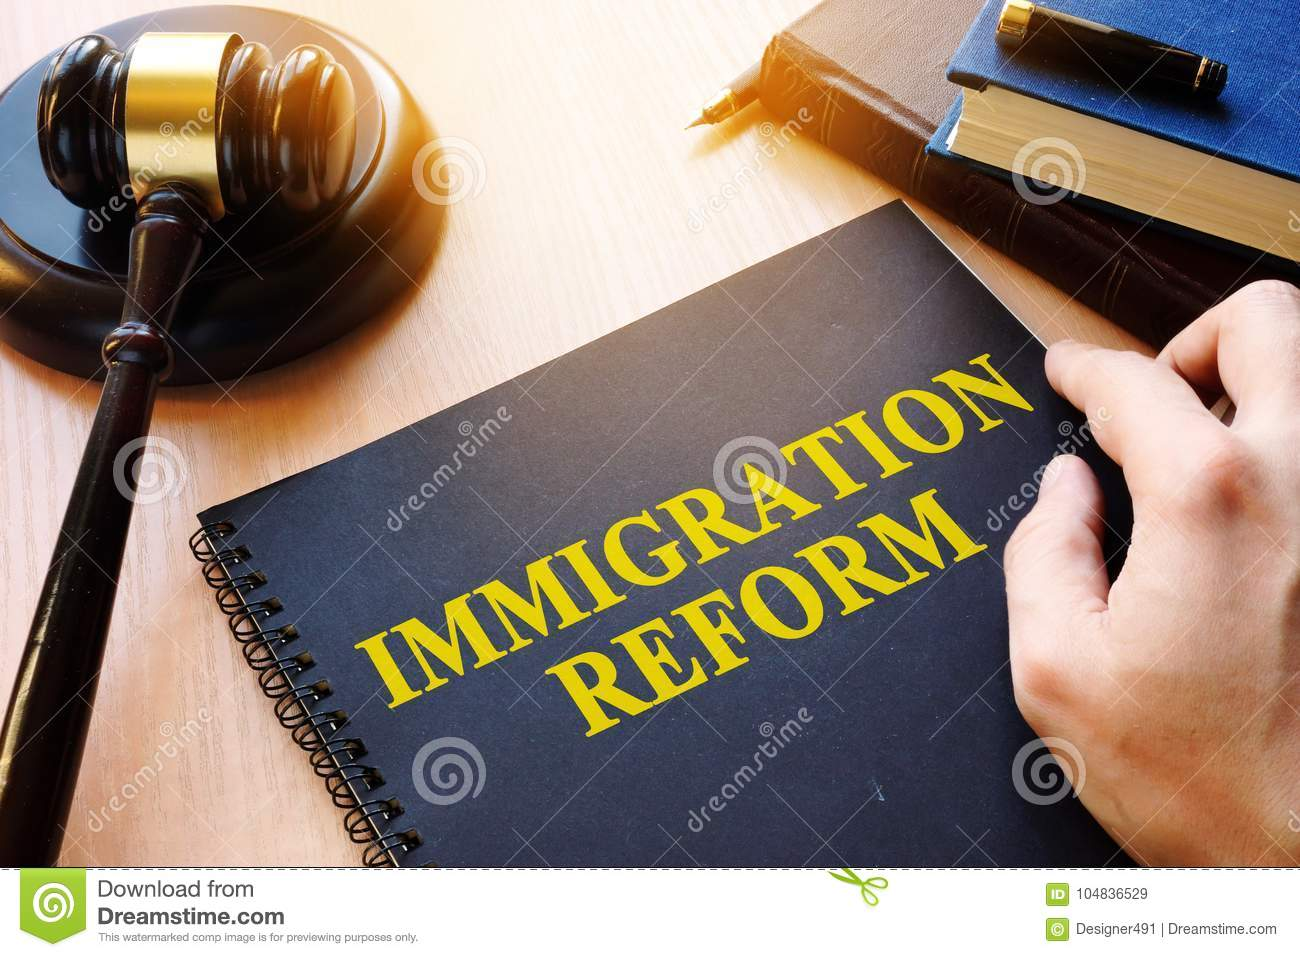 Immigration reform and gavel on a desk.